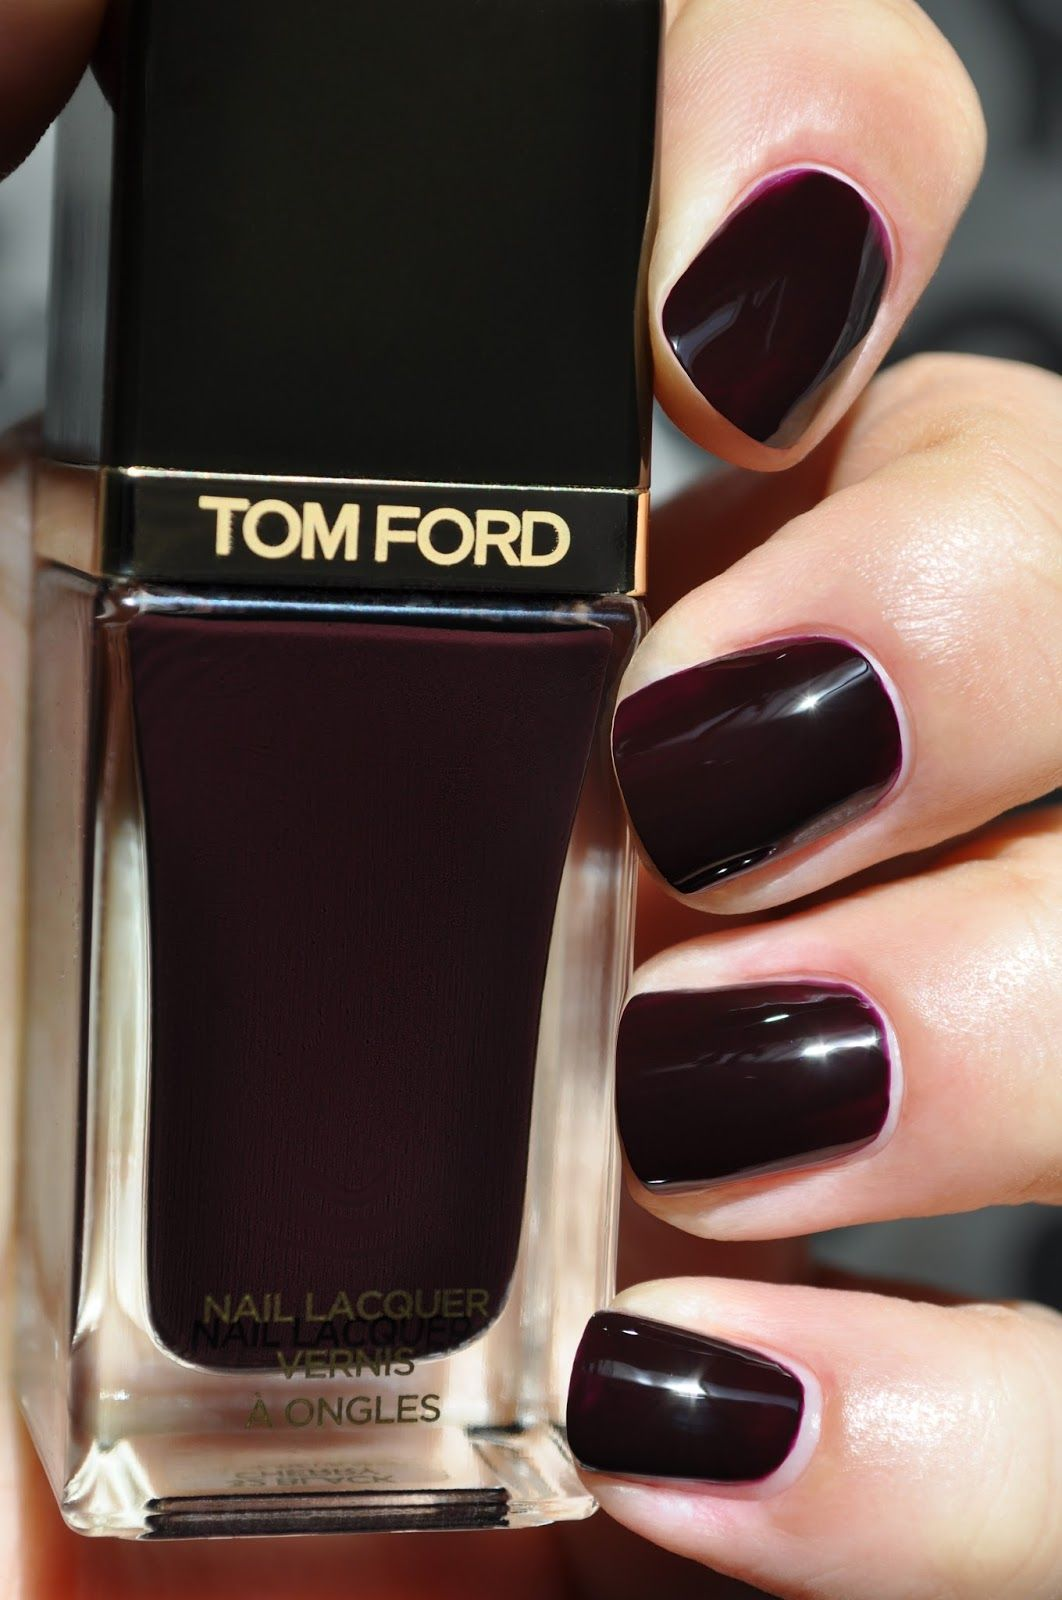 So Lonely in Gorgeous: The Darker The Cherry, The Sweeter The Polish ...